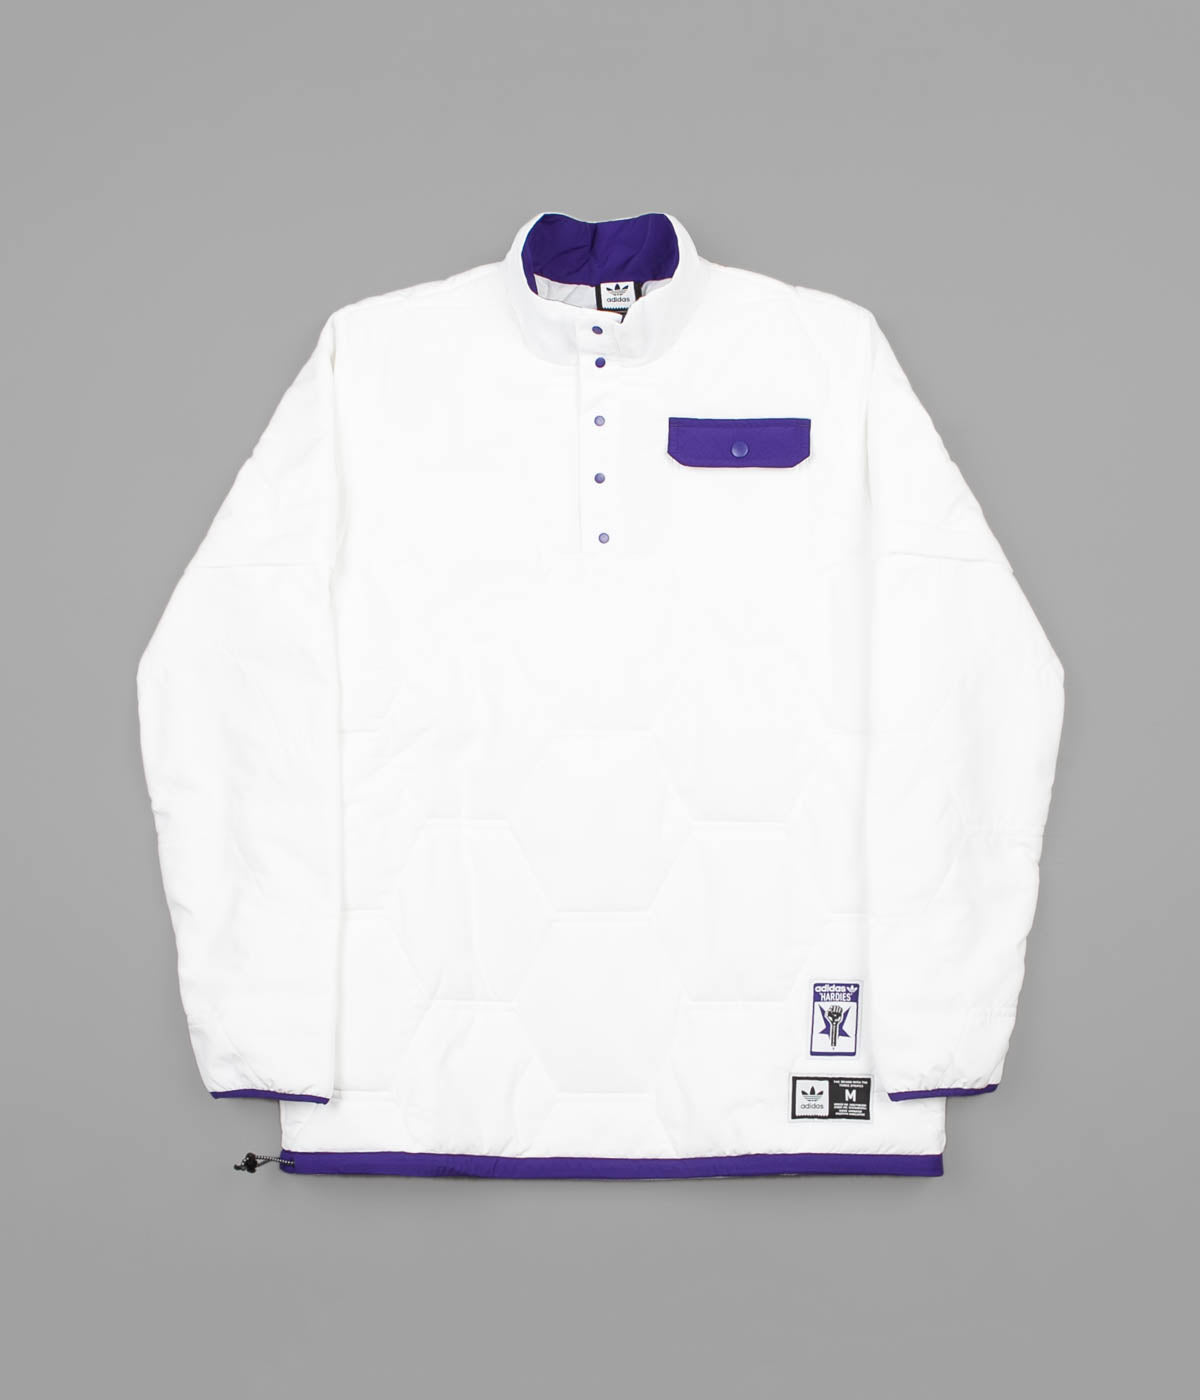 de64613b64 Adidas x Hardies Jacket - White / Collegiate Purple / Black | Flatspot